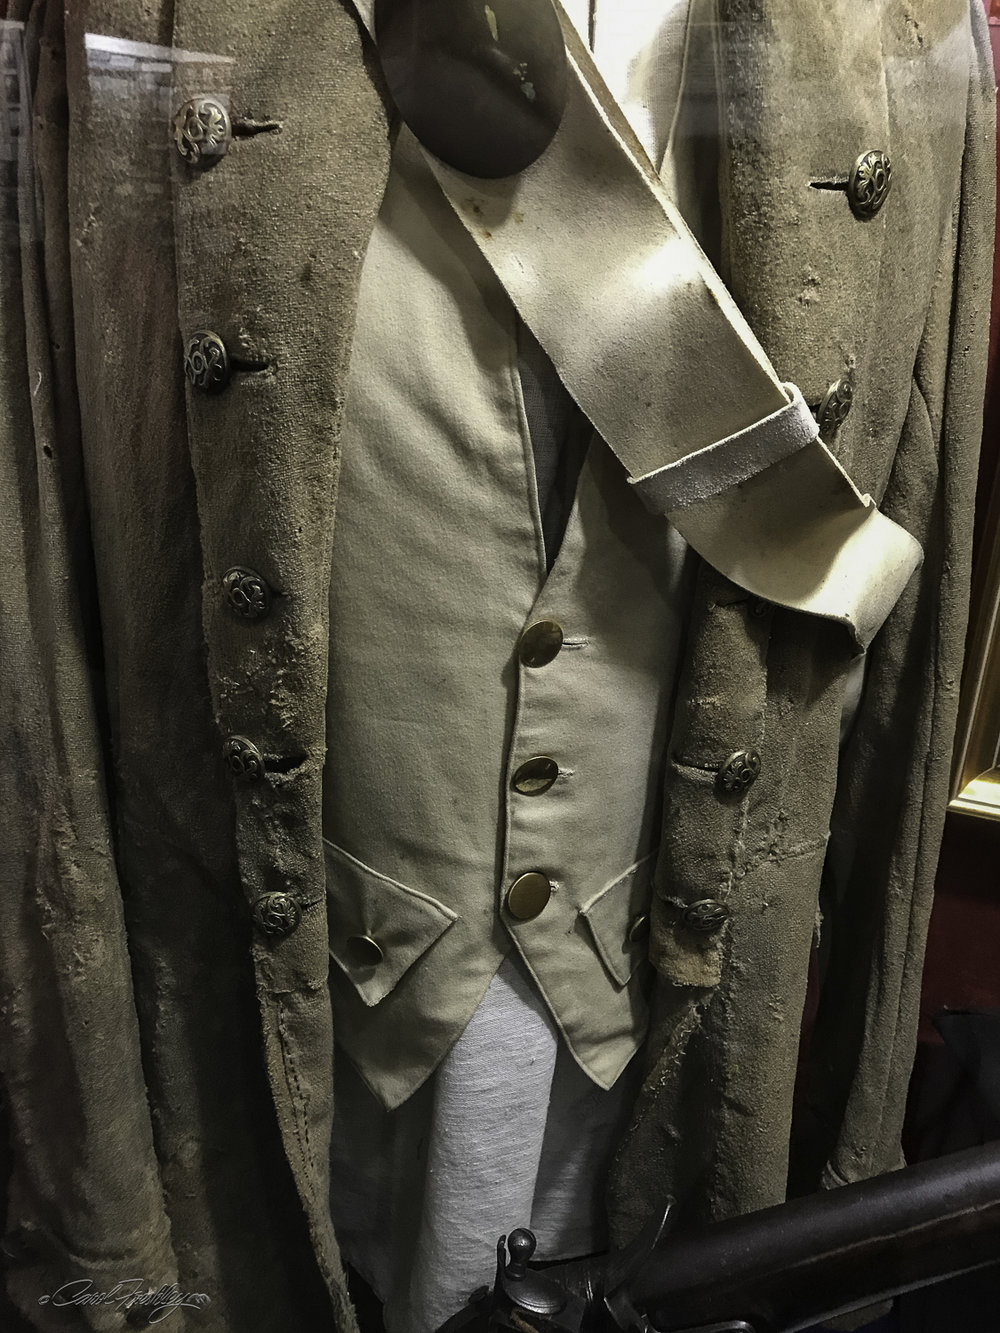 This is the Revolutionary War Uniform Coat of John Dunwoody, born in 1737.  He was a teacher in Pennsylvania before joining the war.  He wore this uniform while serving with General Washington during the Delaware River crossing on December 25, 1776, during the Battle of Trenton on December 26, 1776 and in the Battle of Brandywine on September 11, 1777 and other battles.  He married Susan Crestwell and was the father of 8 children.  One of his great-great-great grandaughters married Theodore Roosevelt.